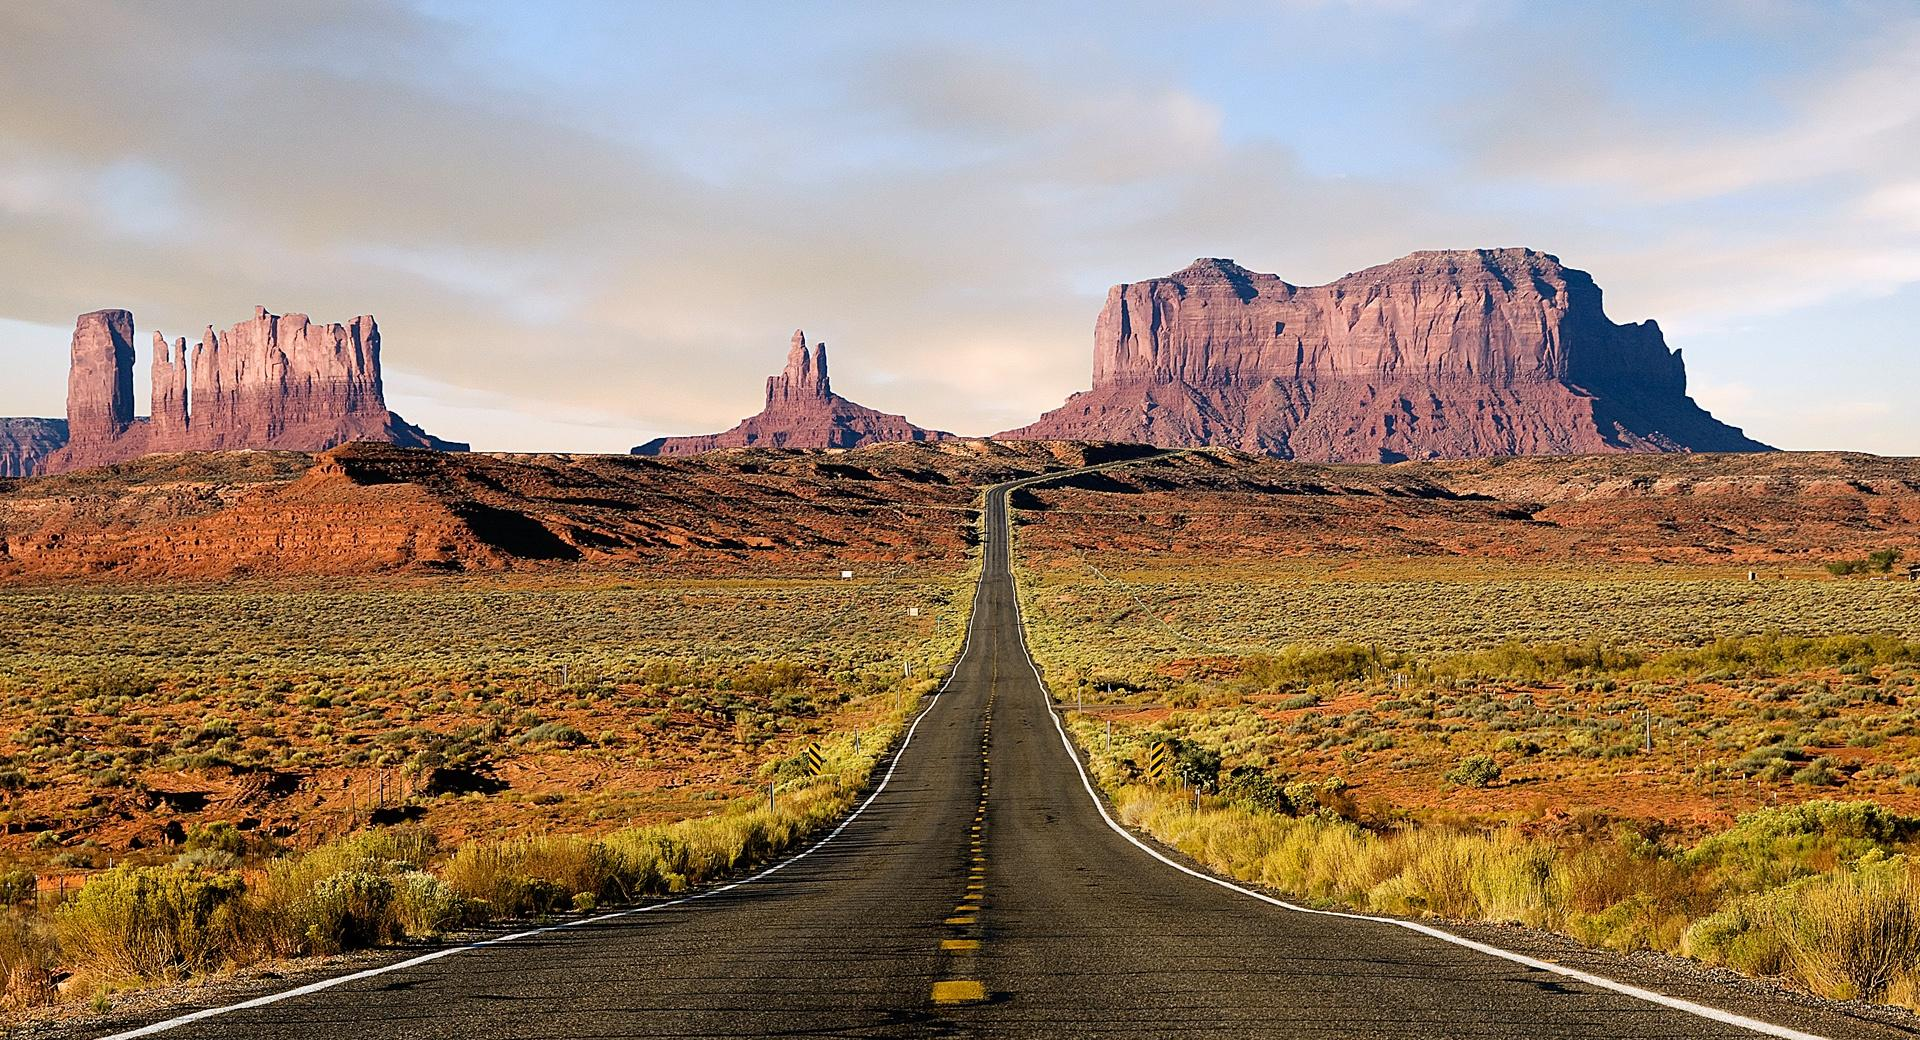 Route Desert wallpapers HD quality